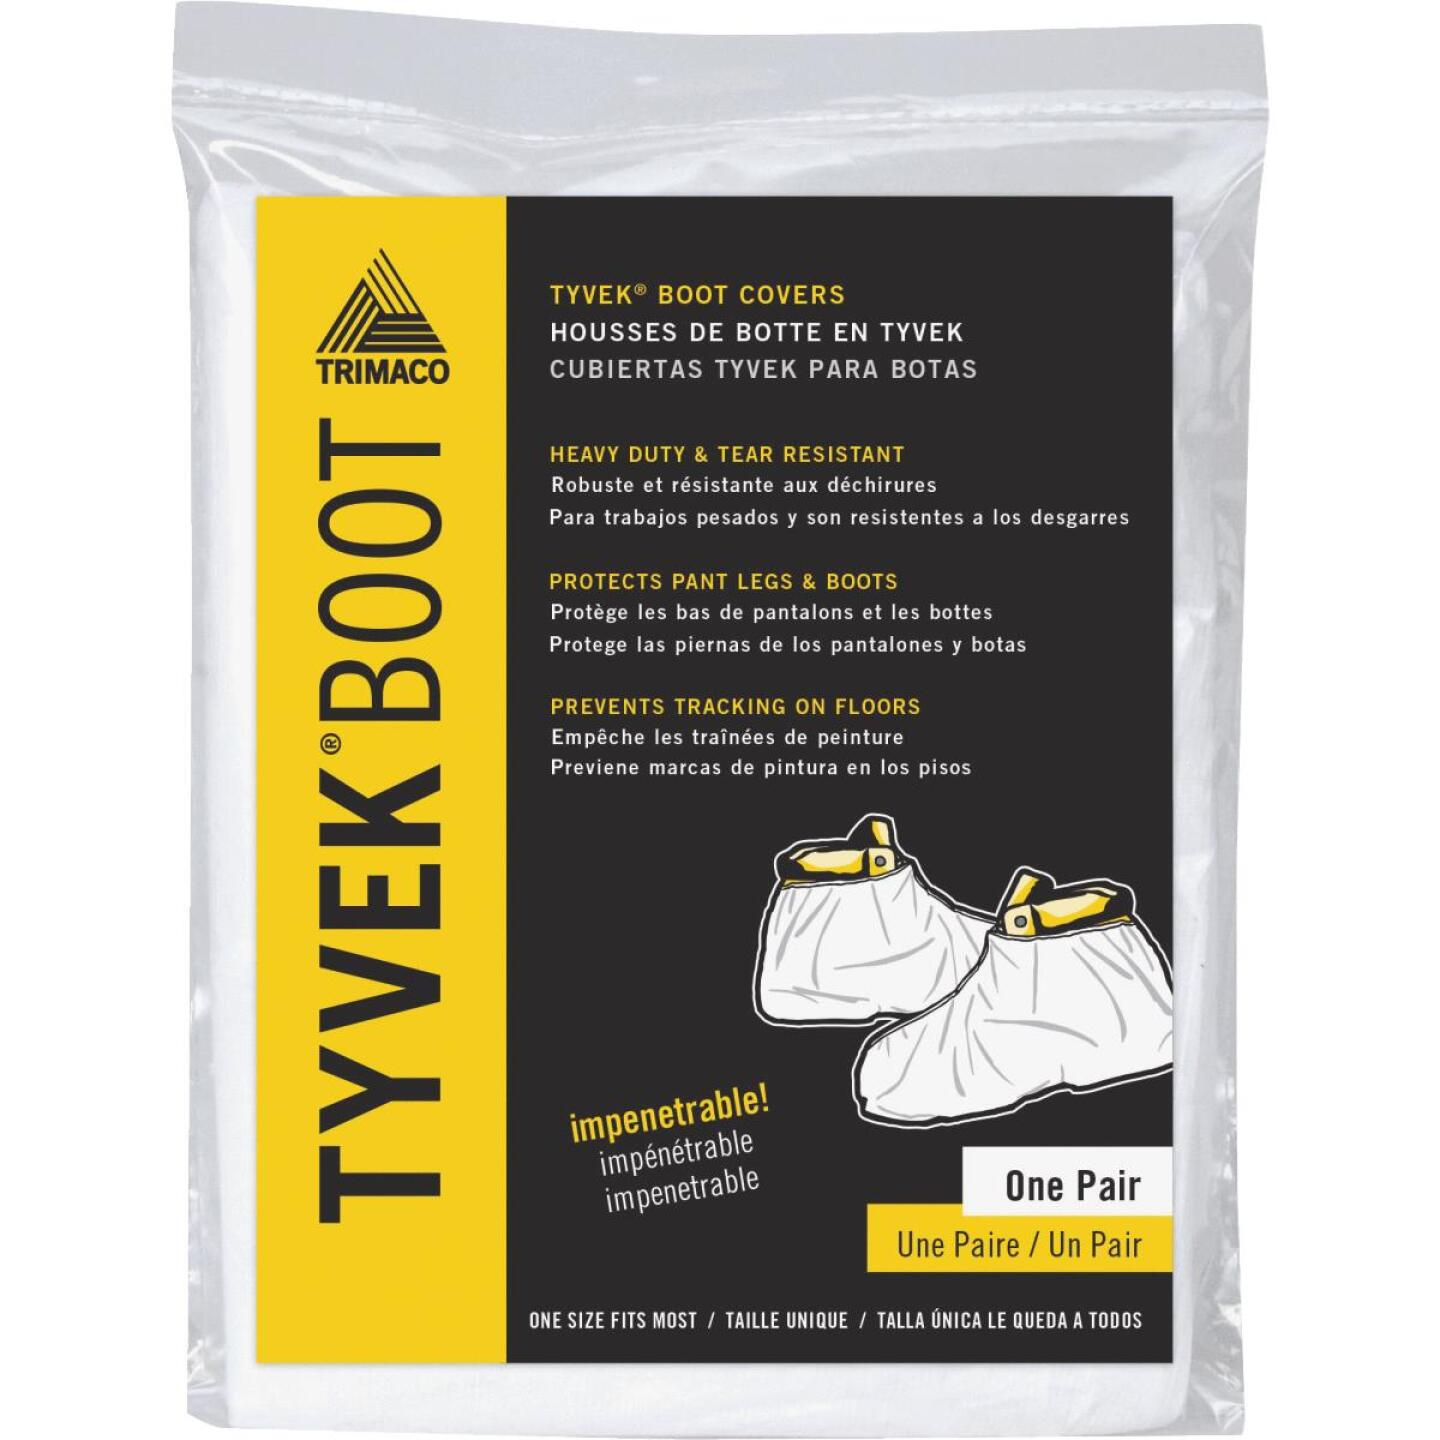 Trimaco 1 Size Fits Most Tyvek White Boot Guard Cover Image 1